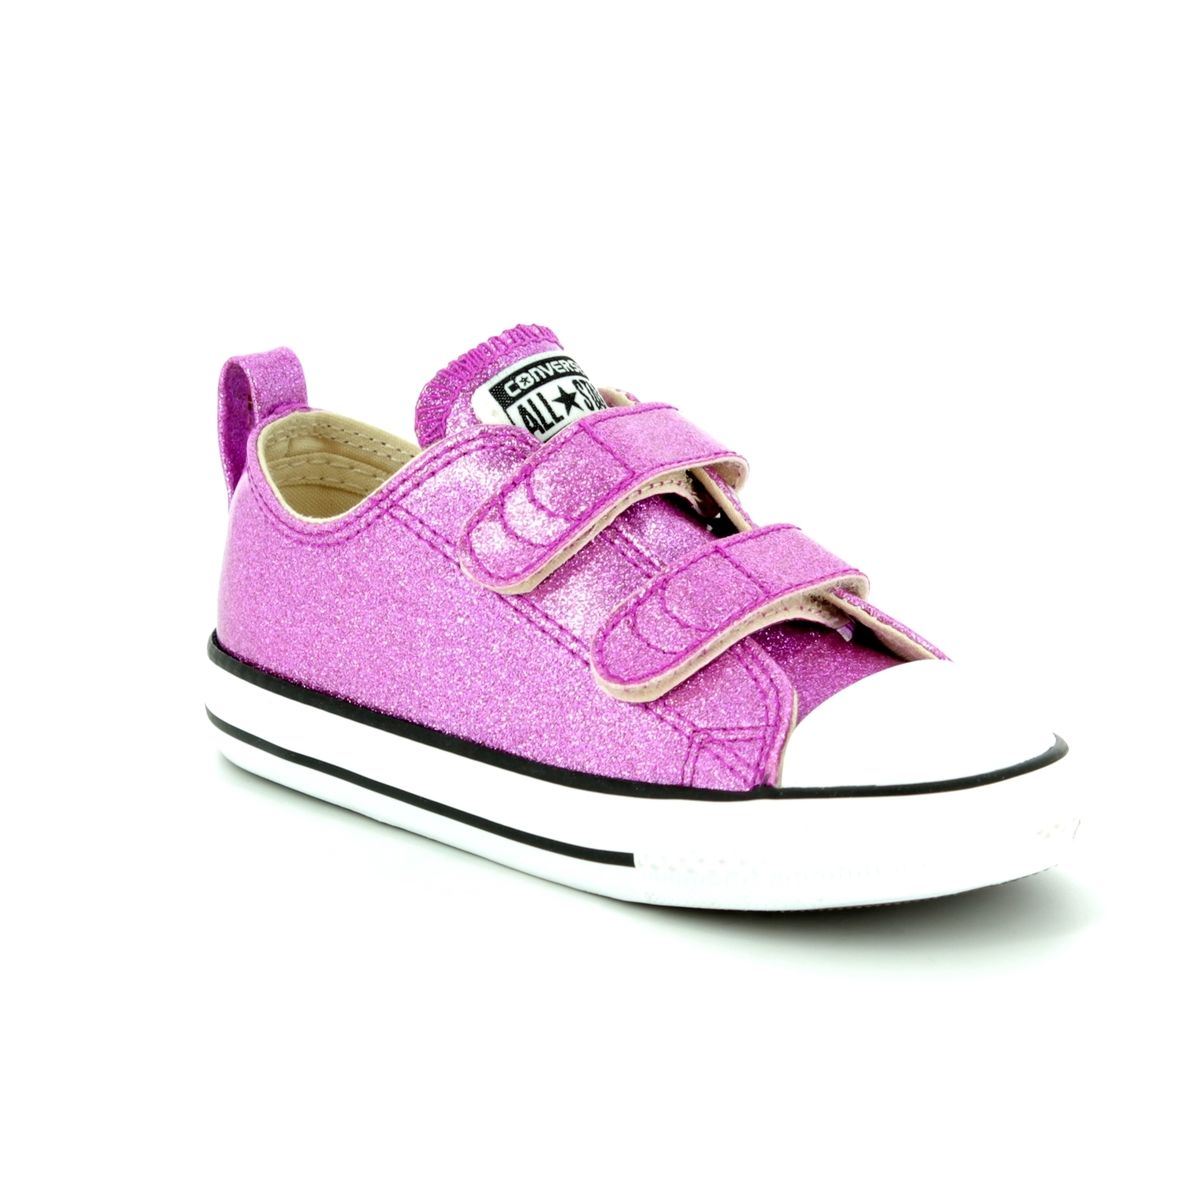 8fc44c269b54 Converse All Star Ox Velcro Infants 760073C Pink Girls trainers